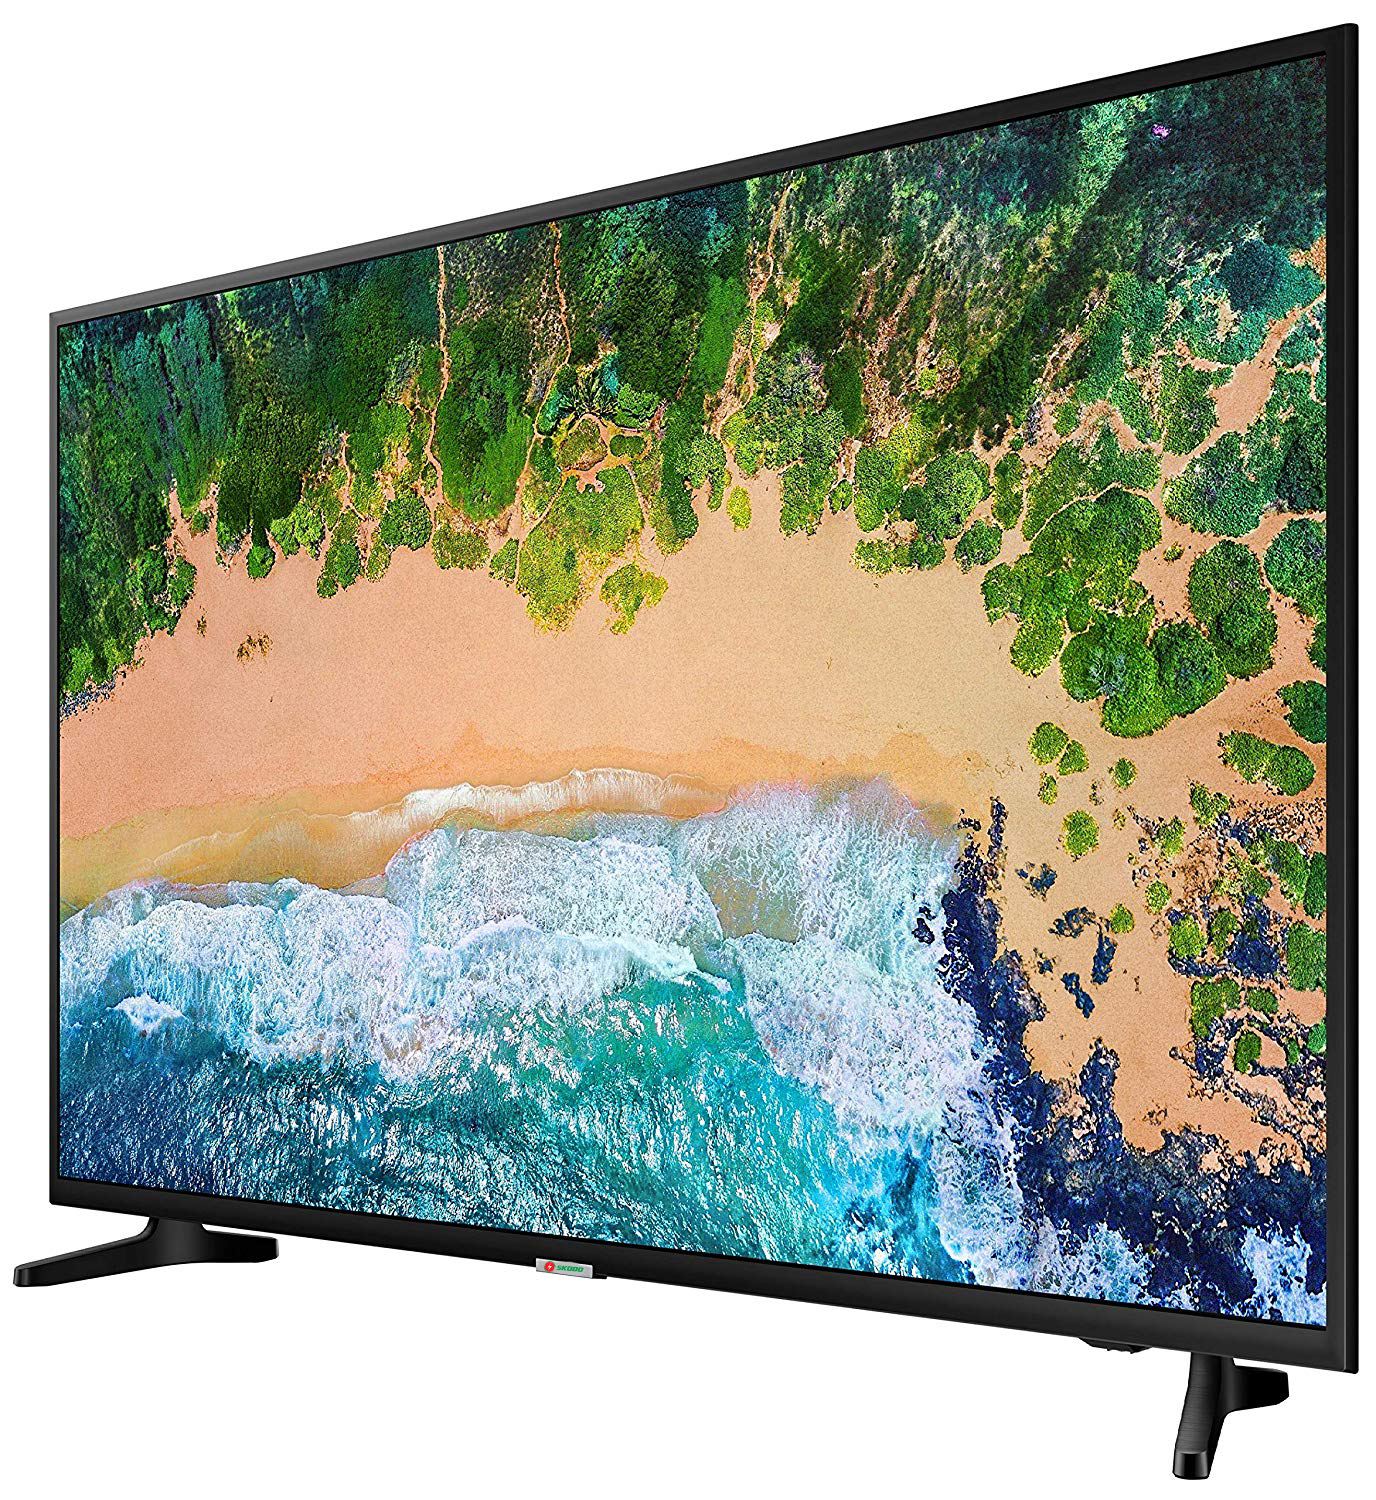 55inch SKODO Full HD Smart TV